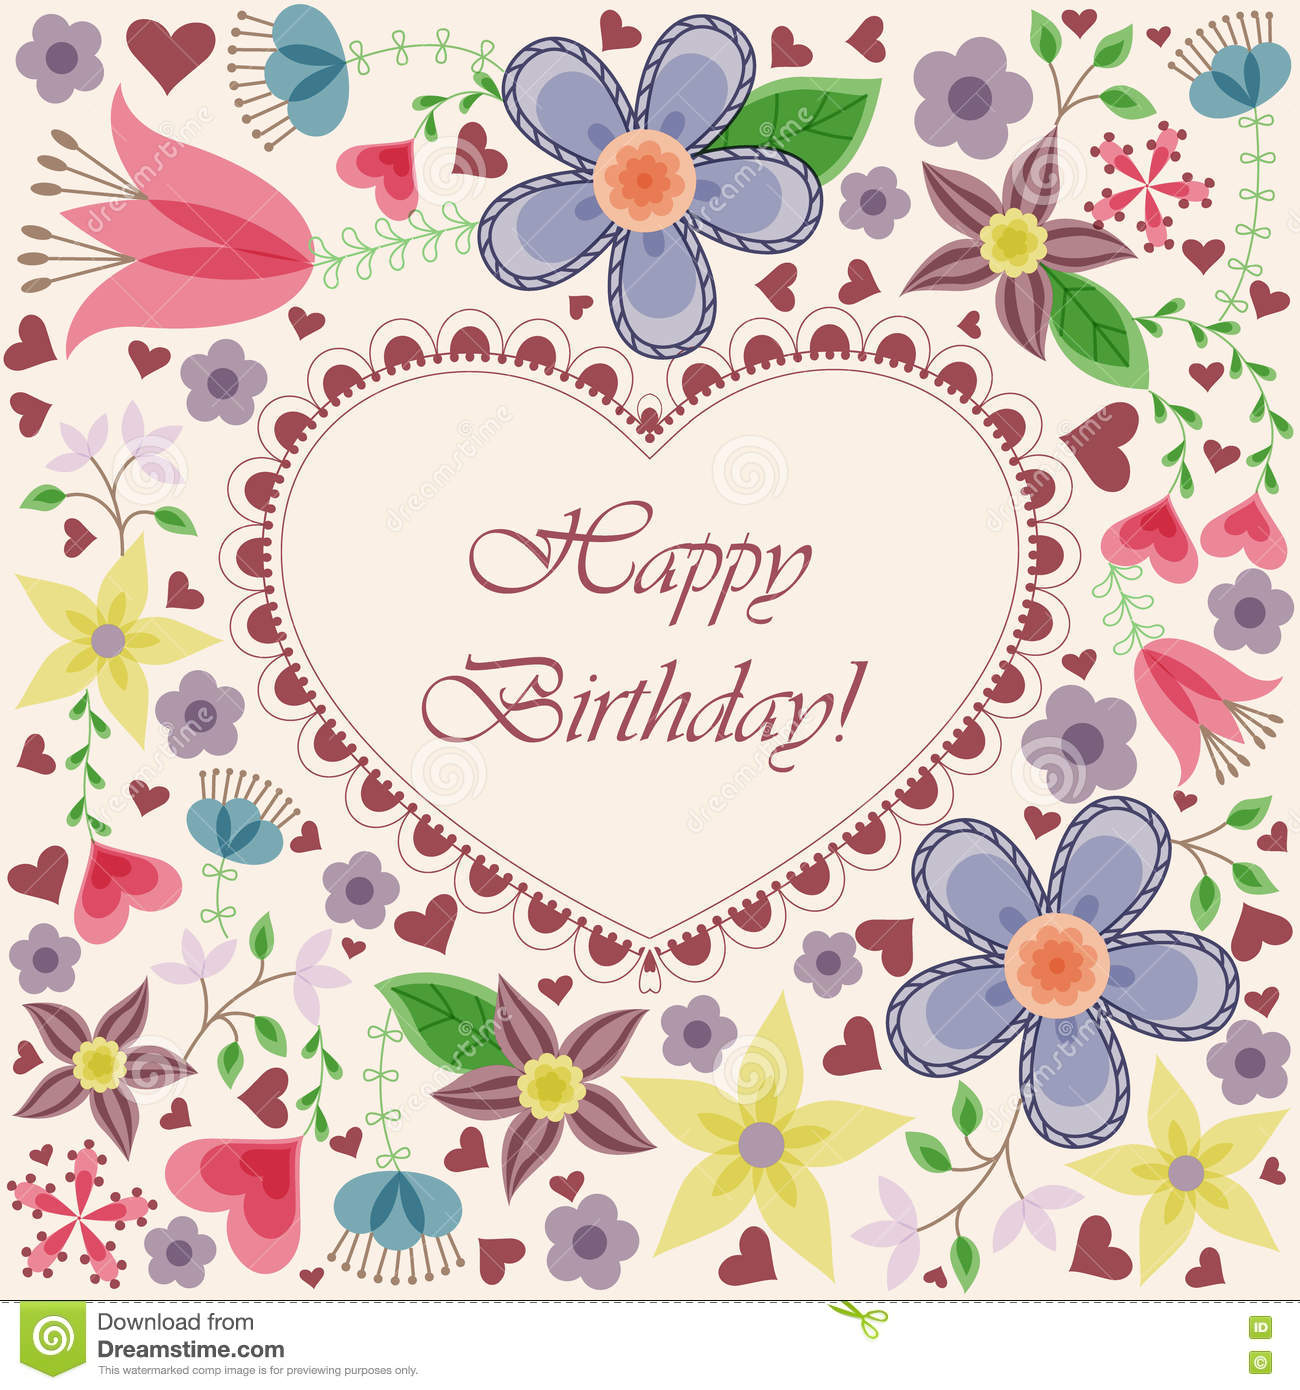 happy birthday card with heart flowers - Happy Birthday Cards Flowers